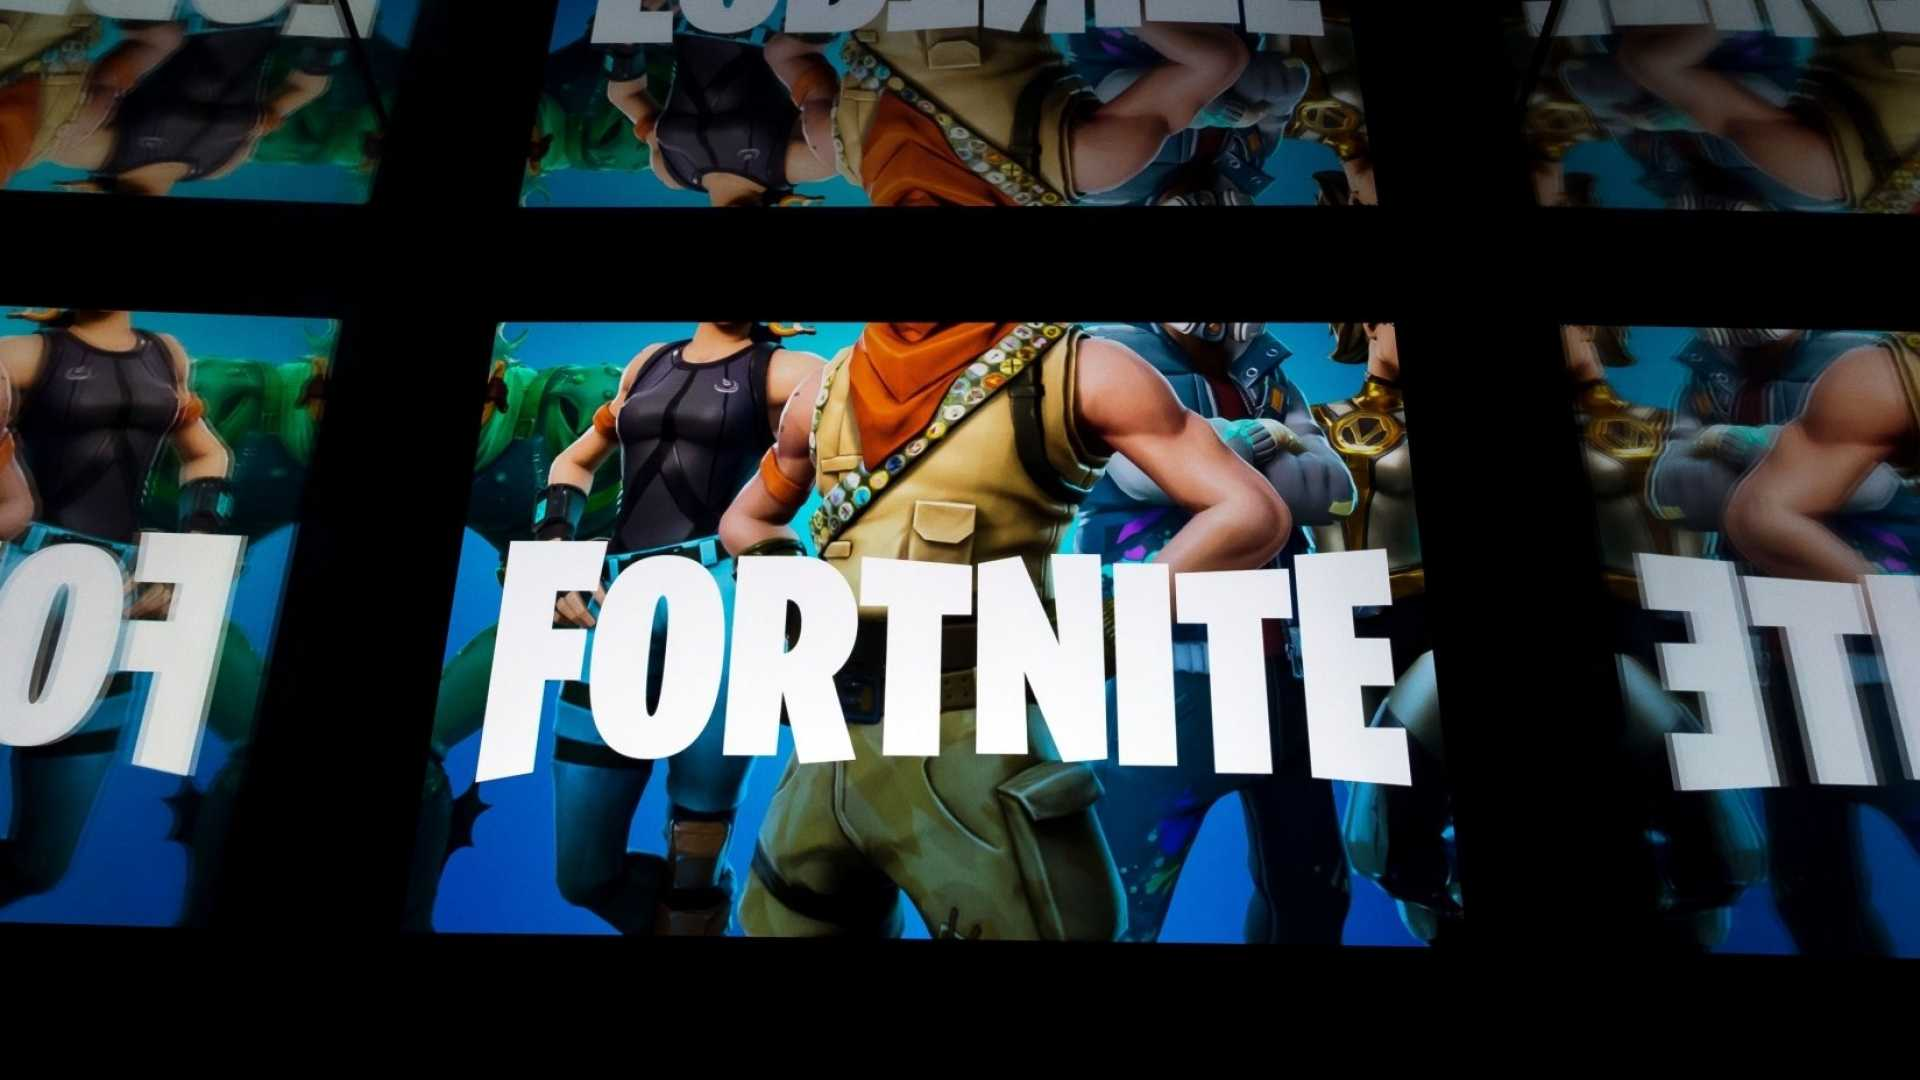 250 Million People Couldn't Play Fortnite for 2 Days. Here's Why Everyone Is Talking About It